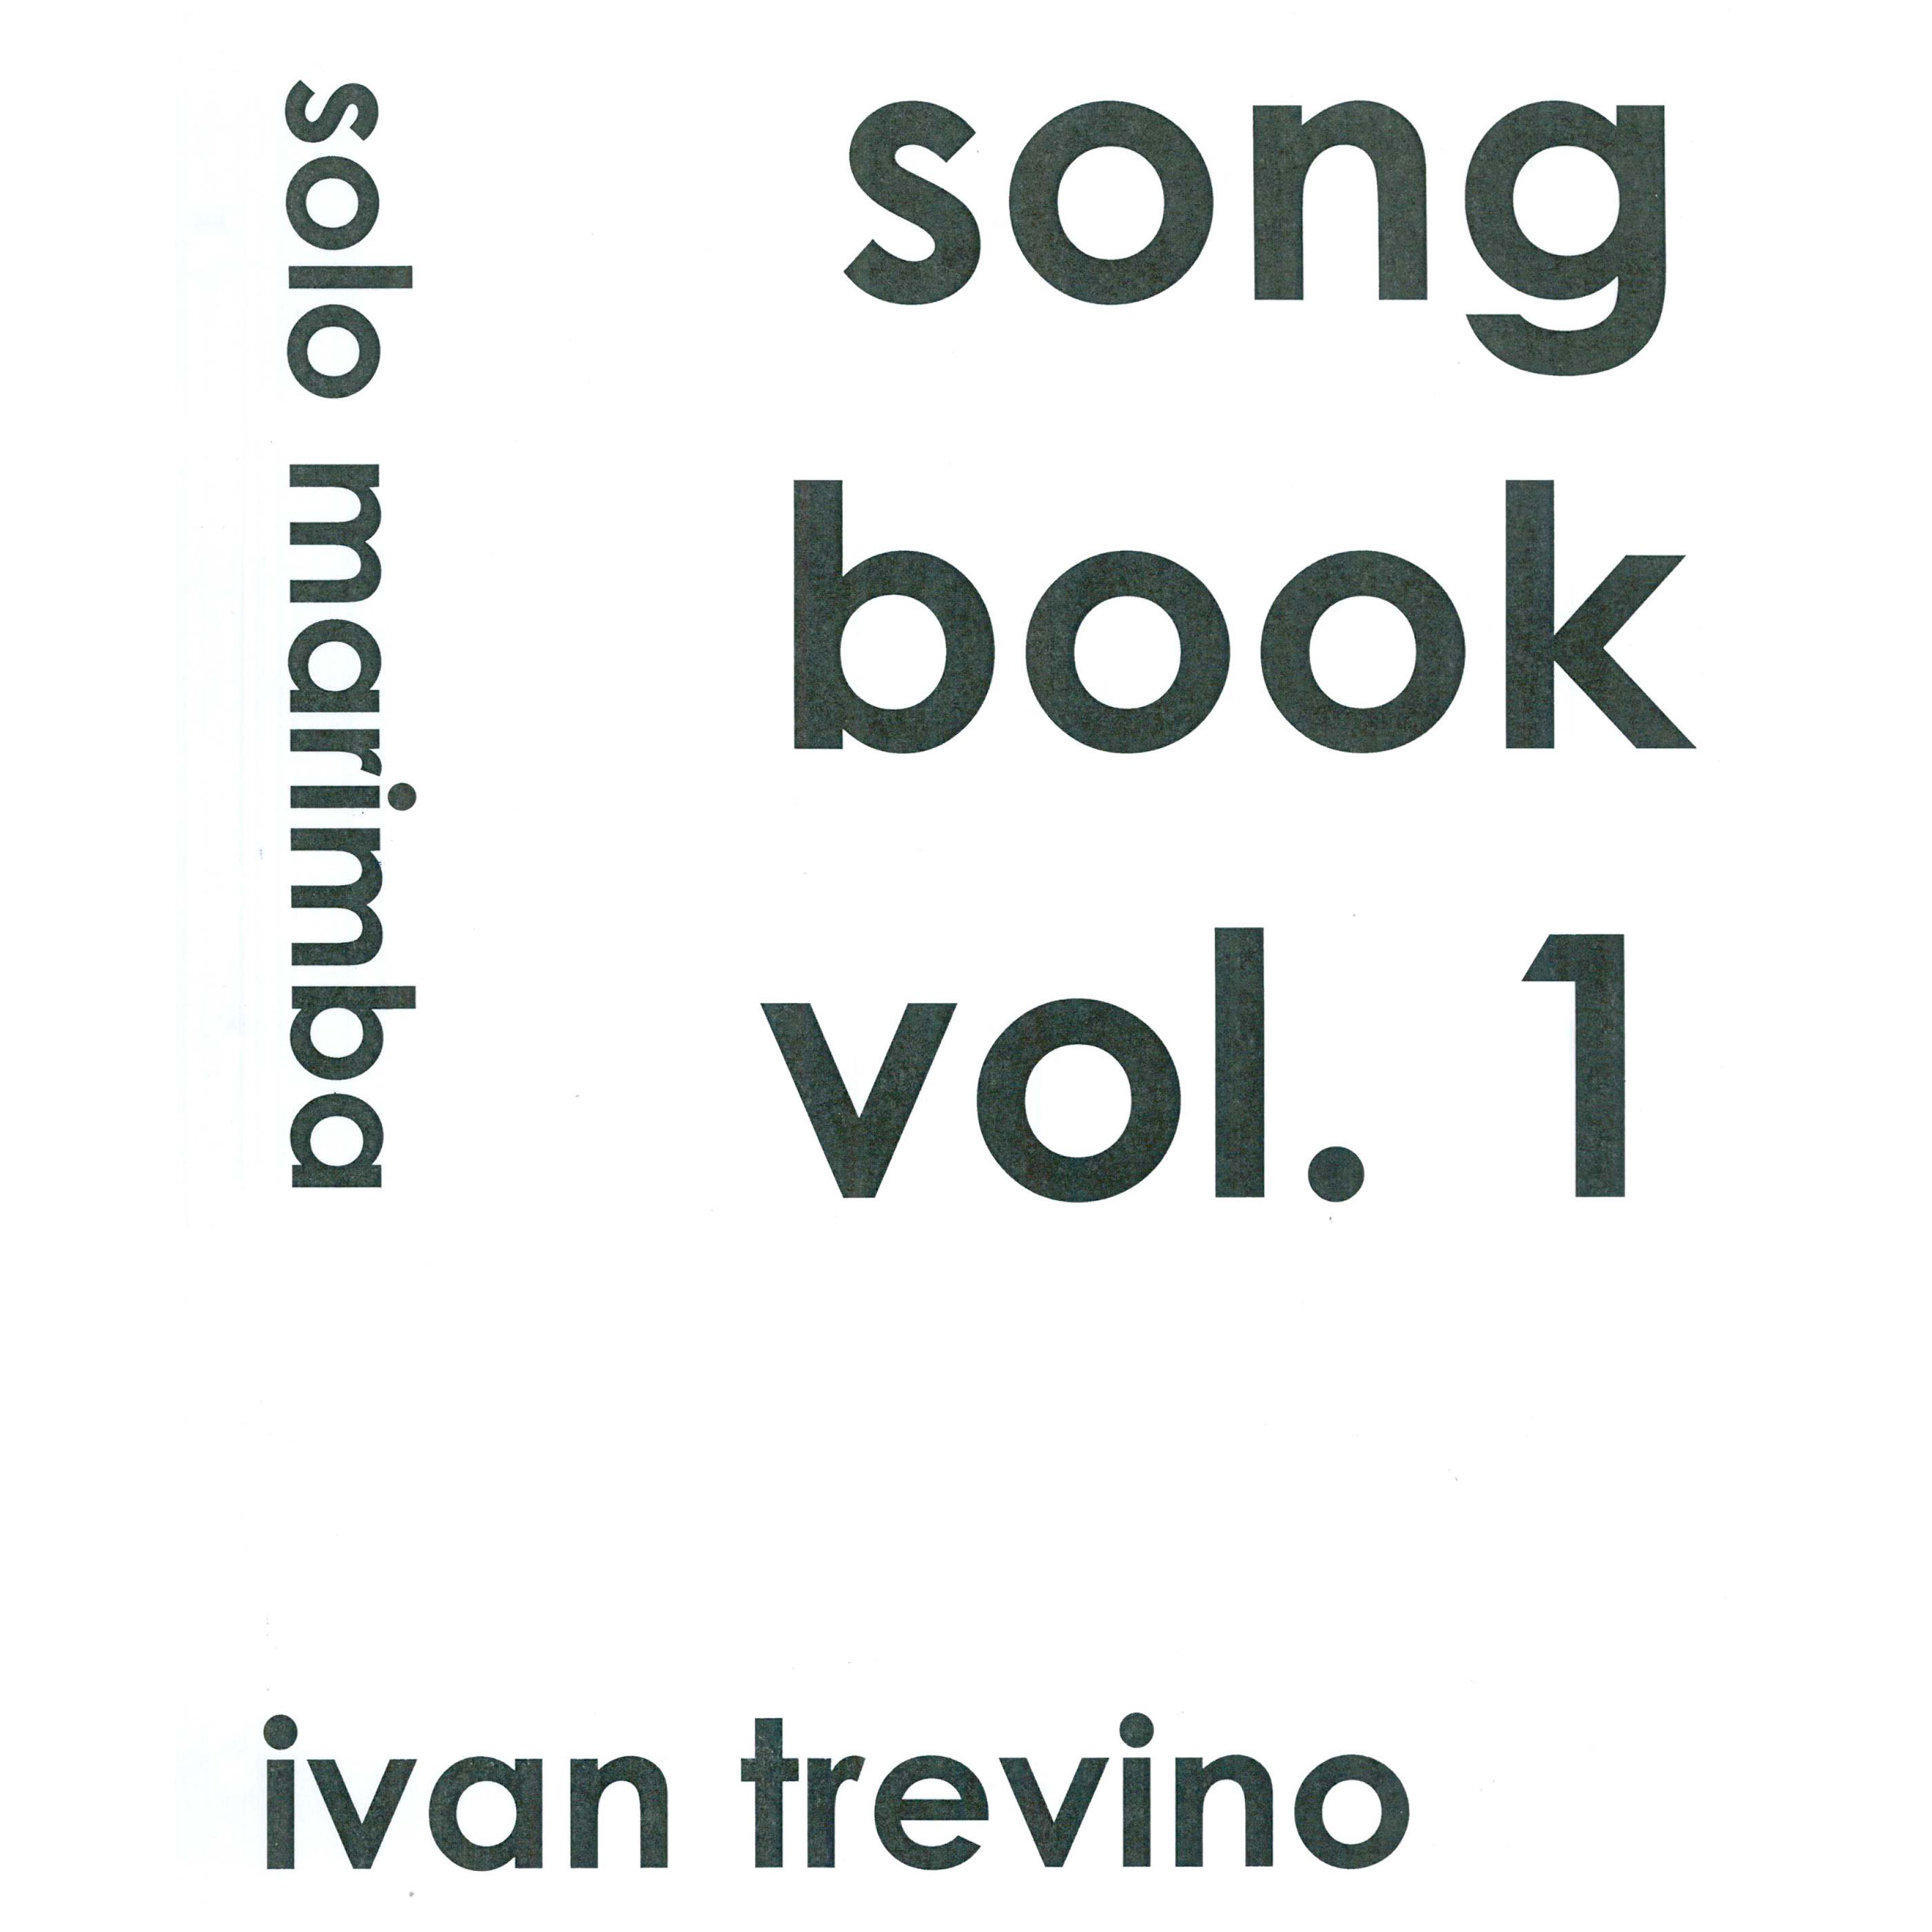 Song Book Vol. 1 by Ivan Trevino